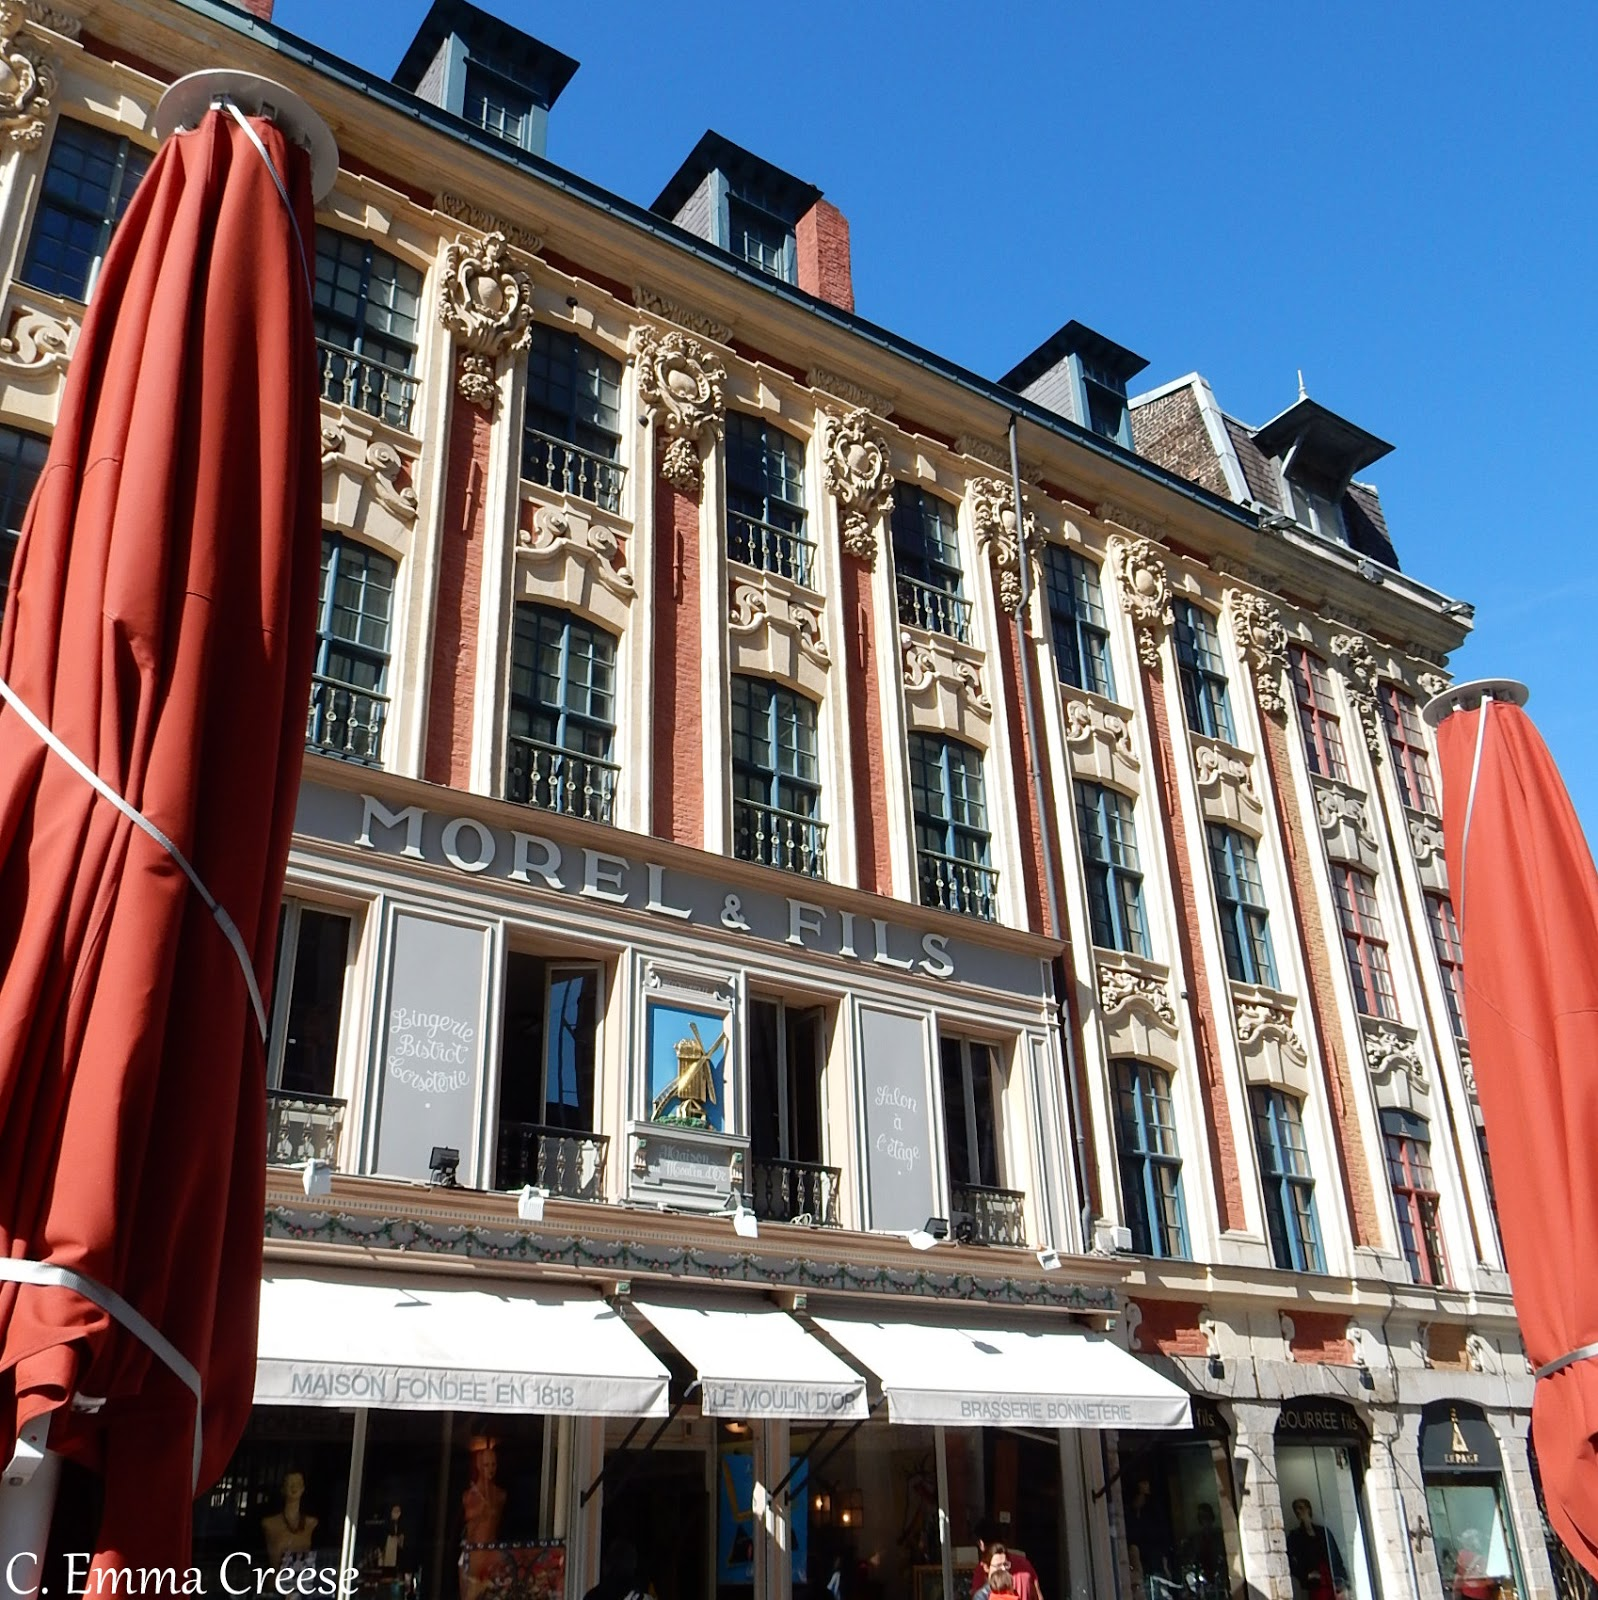 Morel and Fils What to do to in Lille France